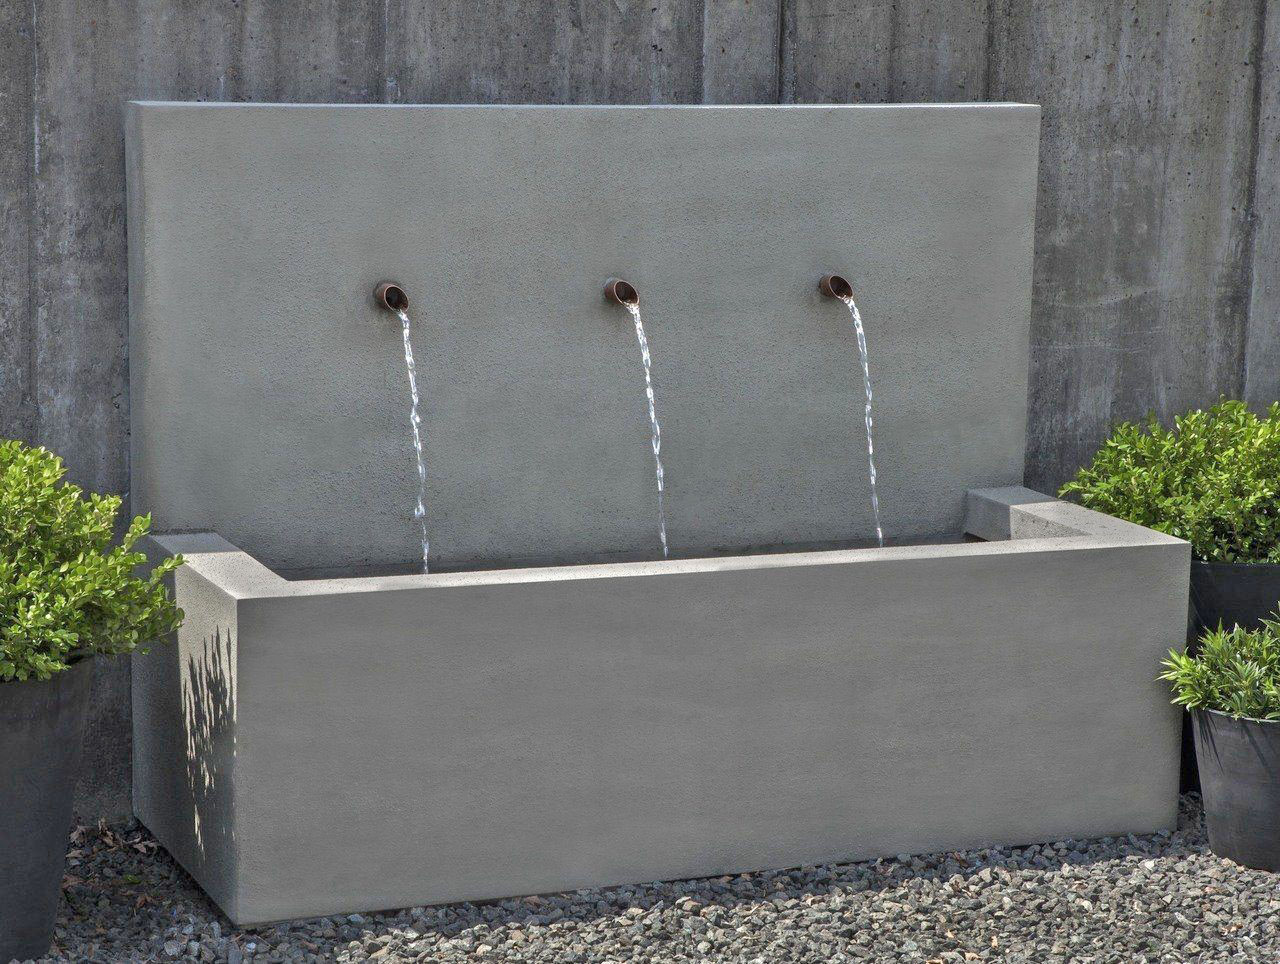 Campania Long Beach Fountain GFRC Concrete